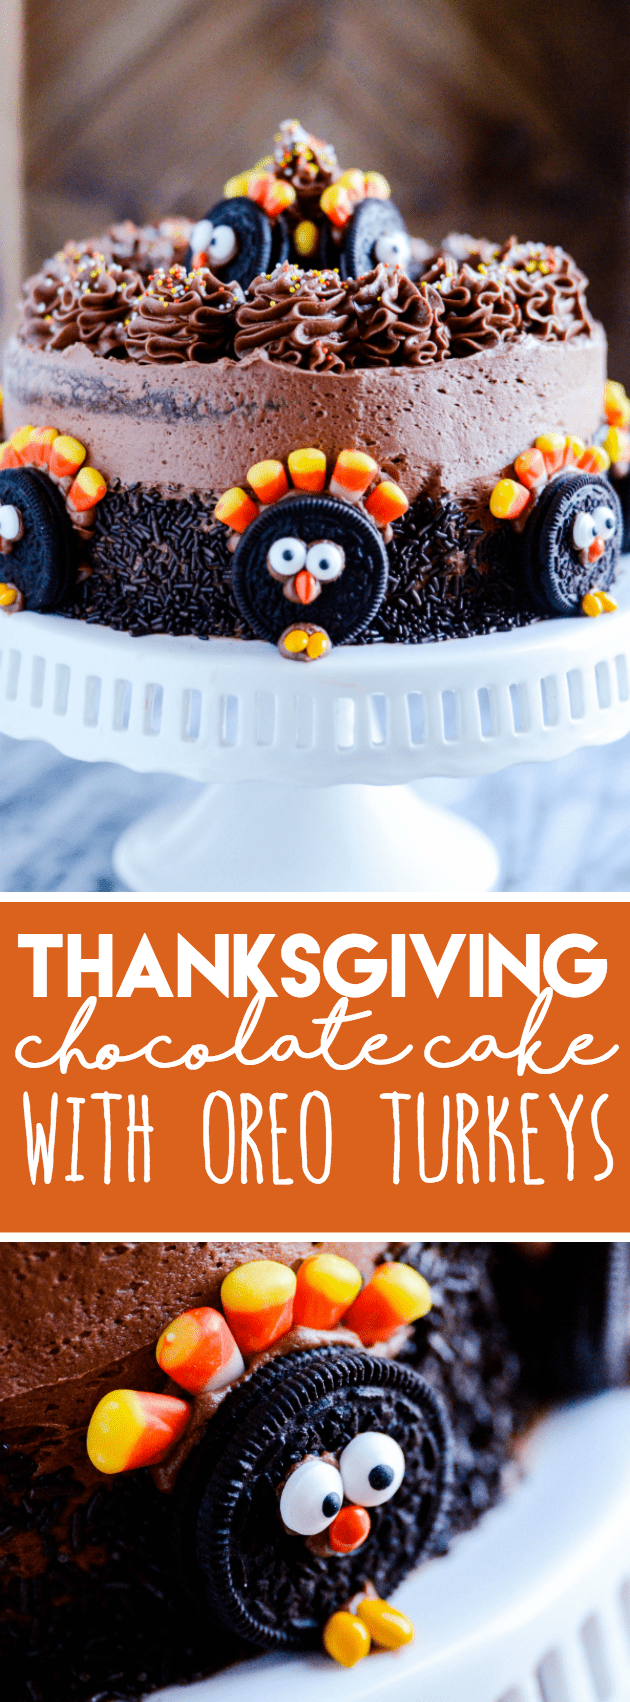 Recipe and instructions for a really cute and easy Thanksgiving cake!